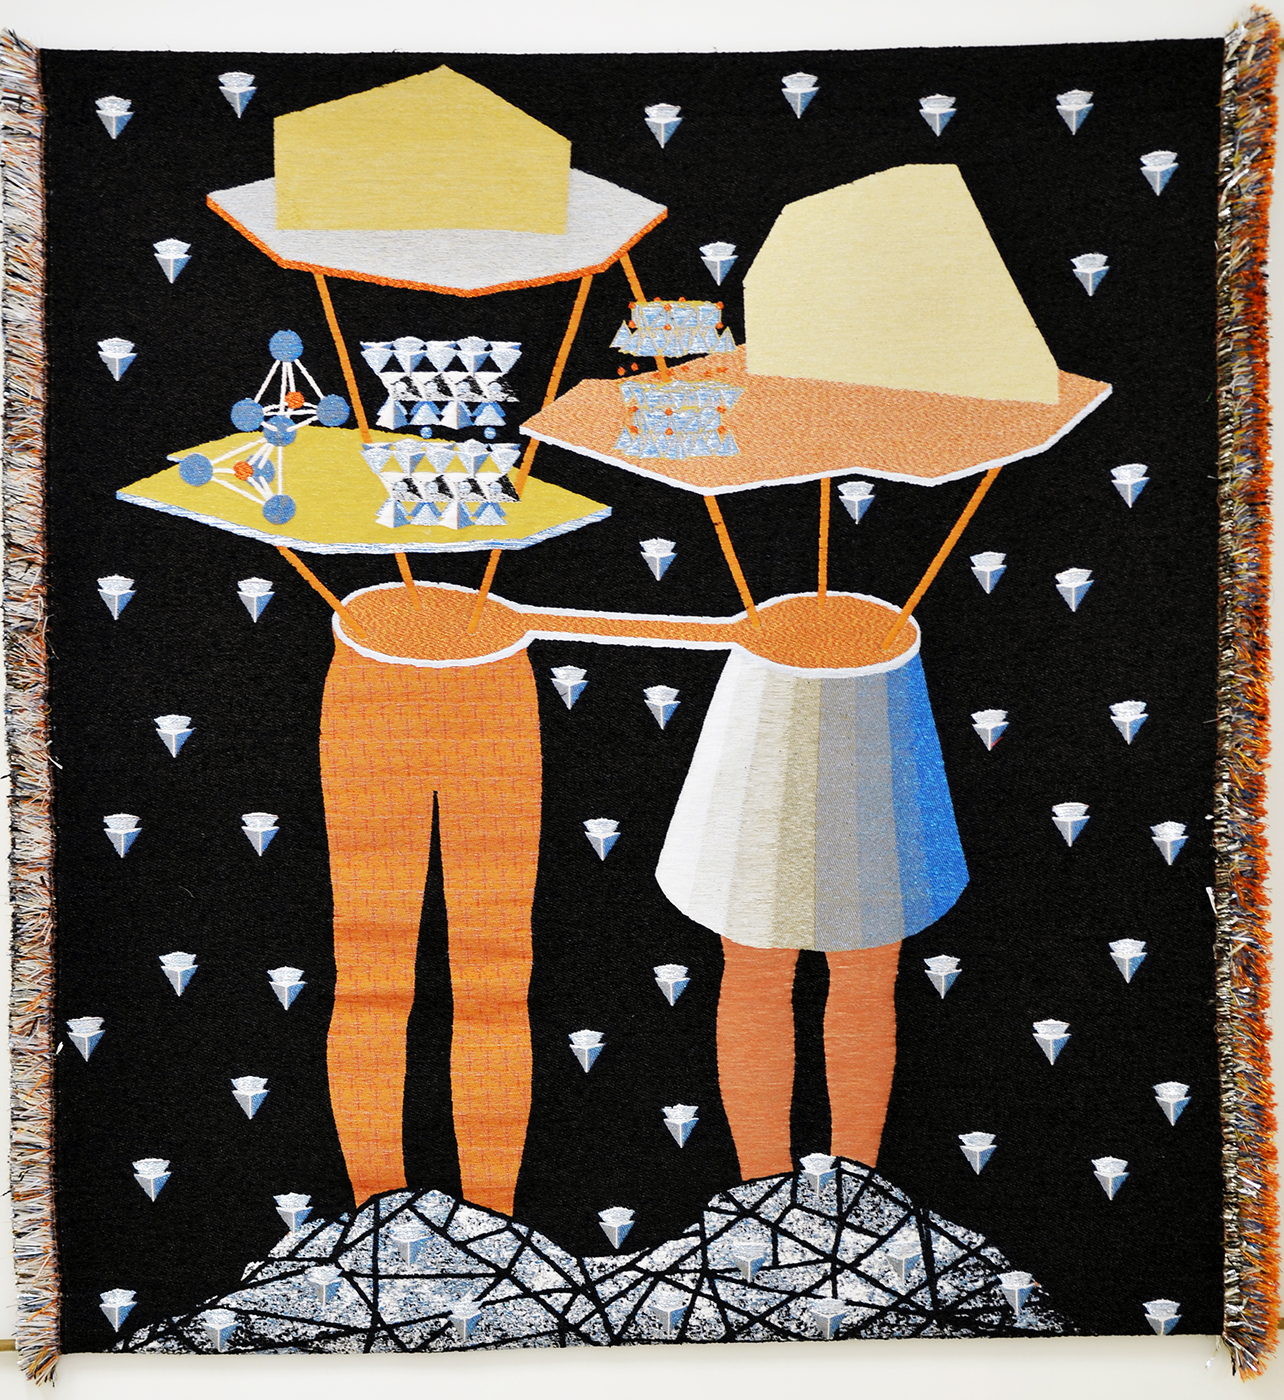 Otobong Nkanga - In Pursuit of Bling : The Transformation, 2014